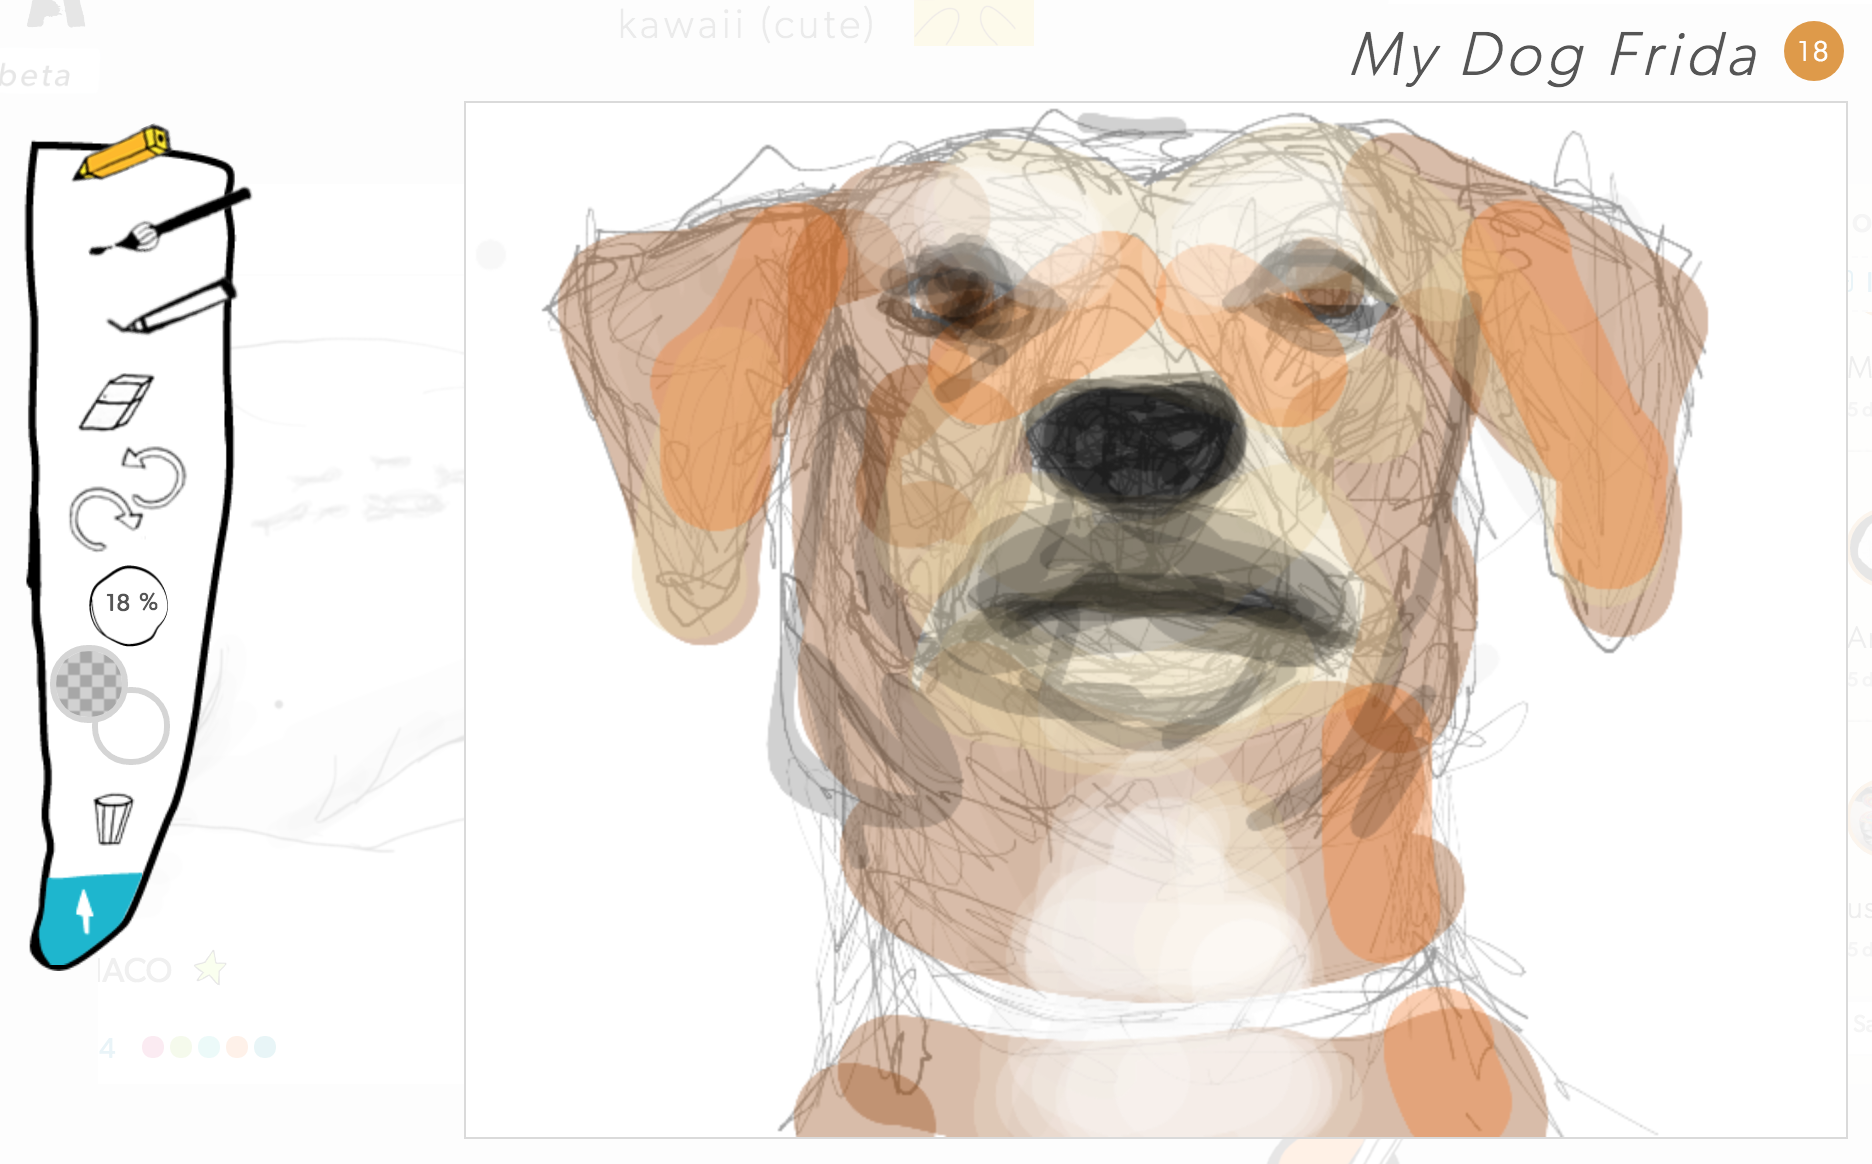 My less-than-awesome drawing of my puppy Frida